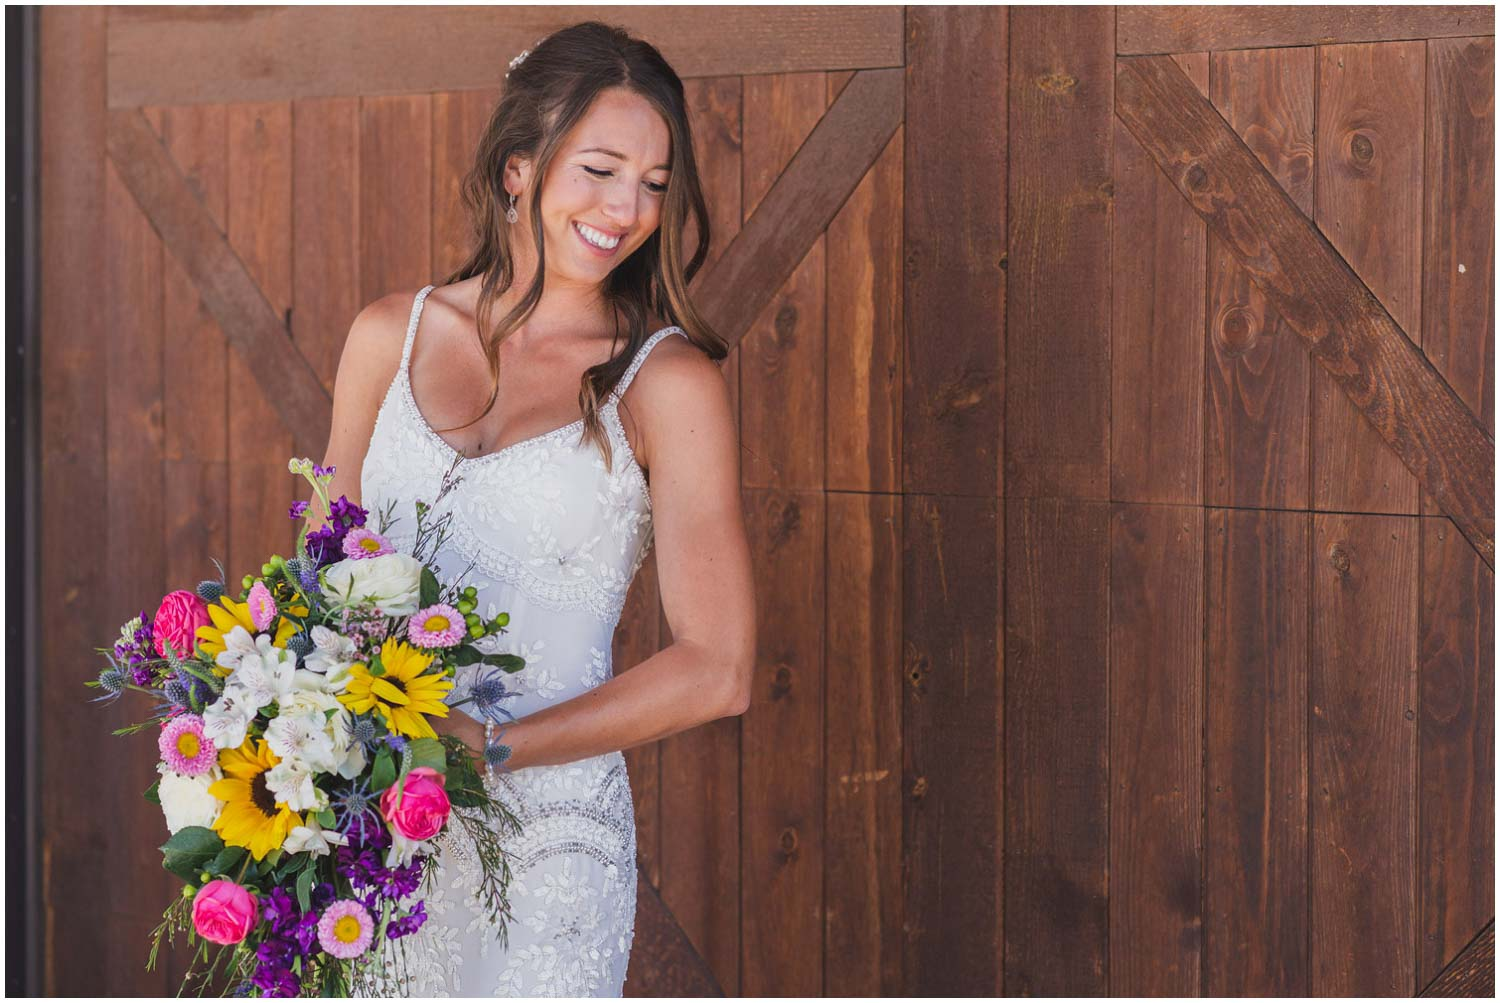 sunkissed bride in front of barn doors in beaded art deco pattern dress with large wildflower bouquet